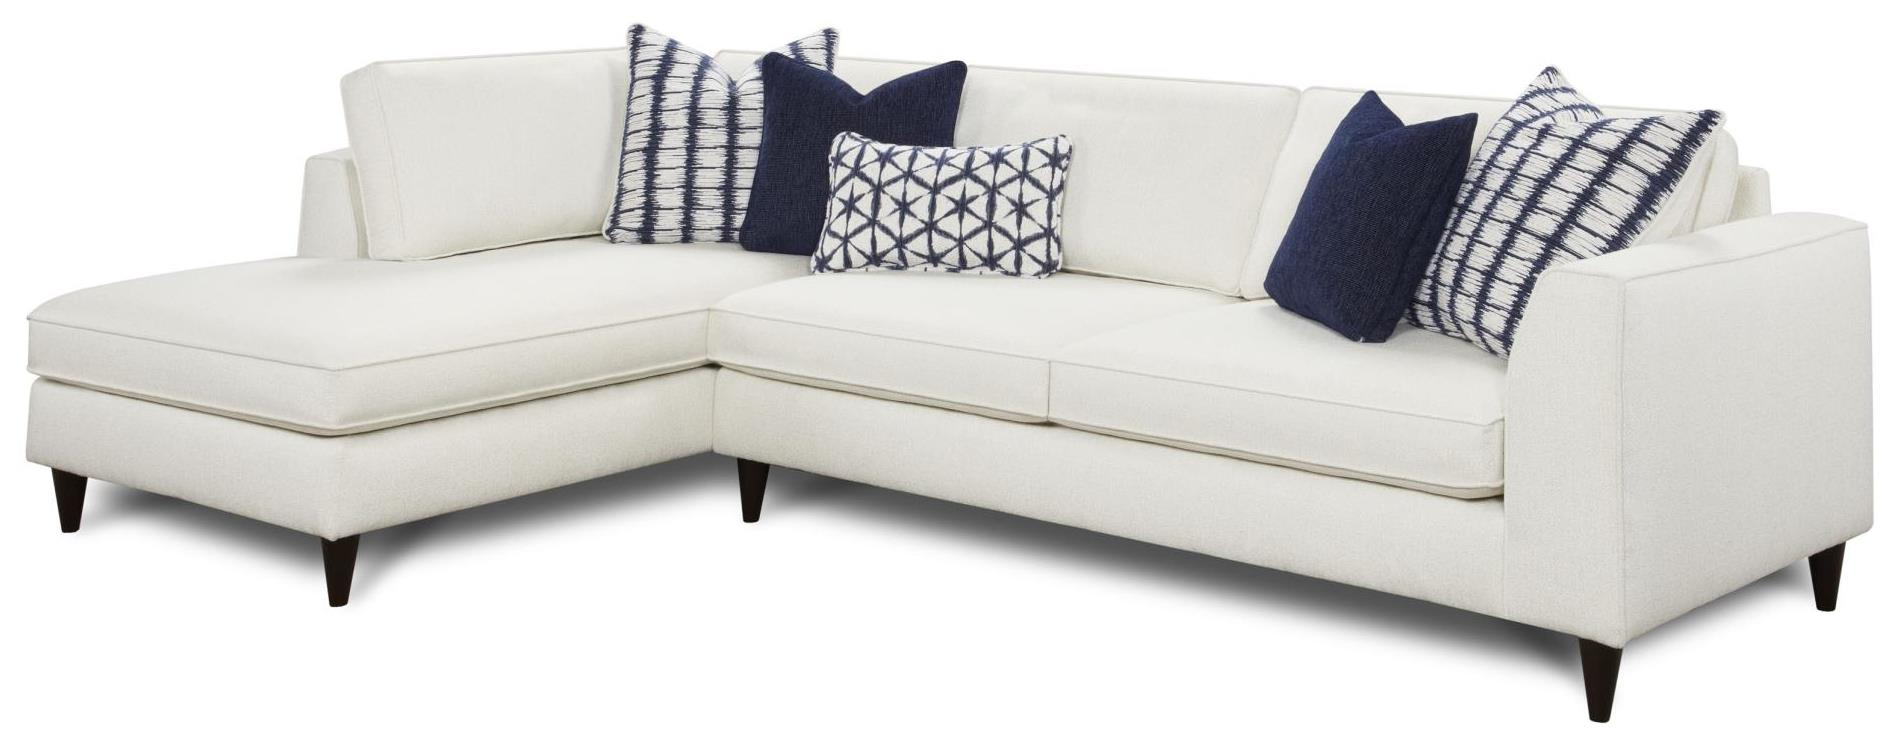 Fusion Furniture Collette 2-Piece Sectional with Left Chaise - Item Number: 3418Bopper Natural+3416